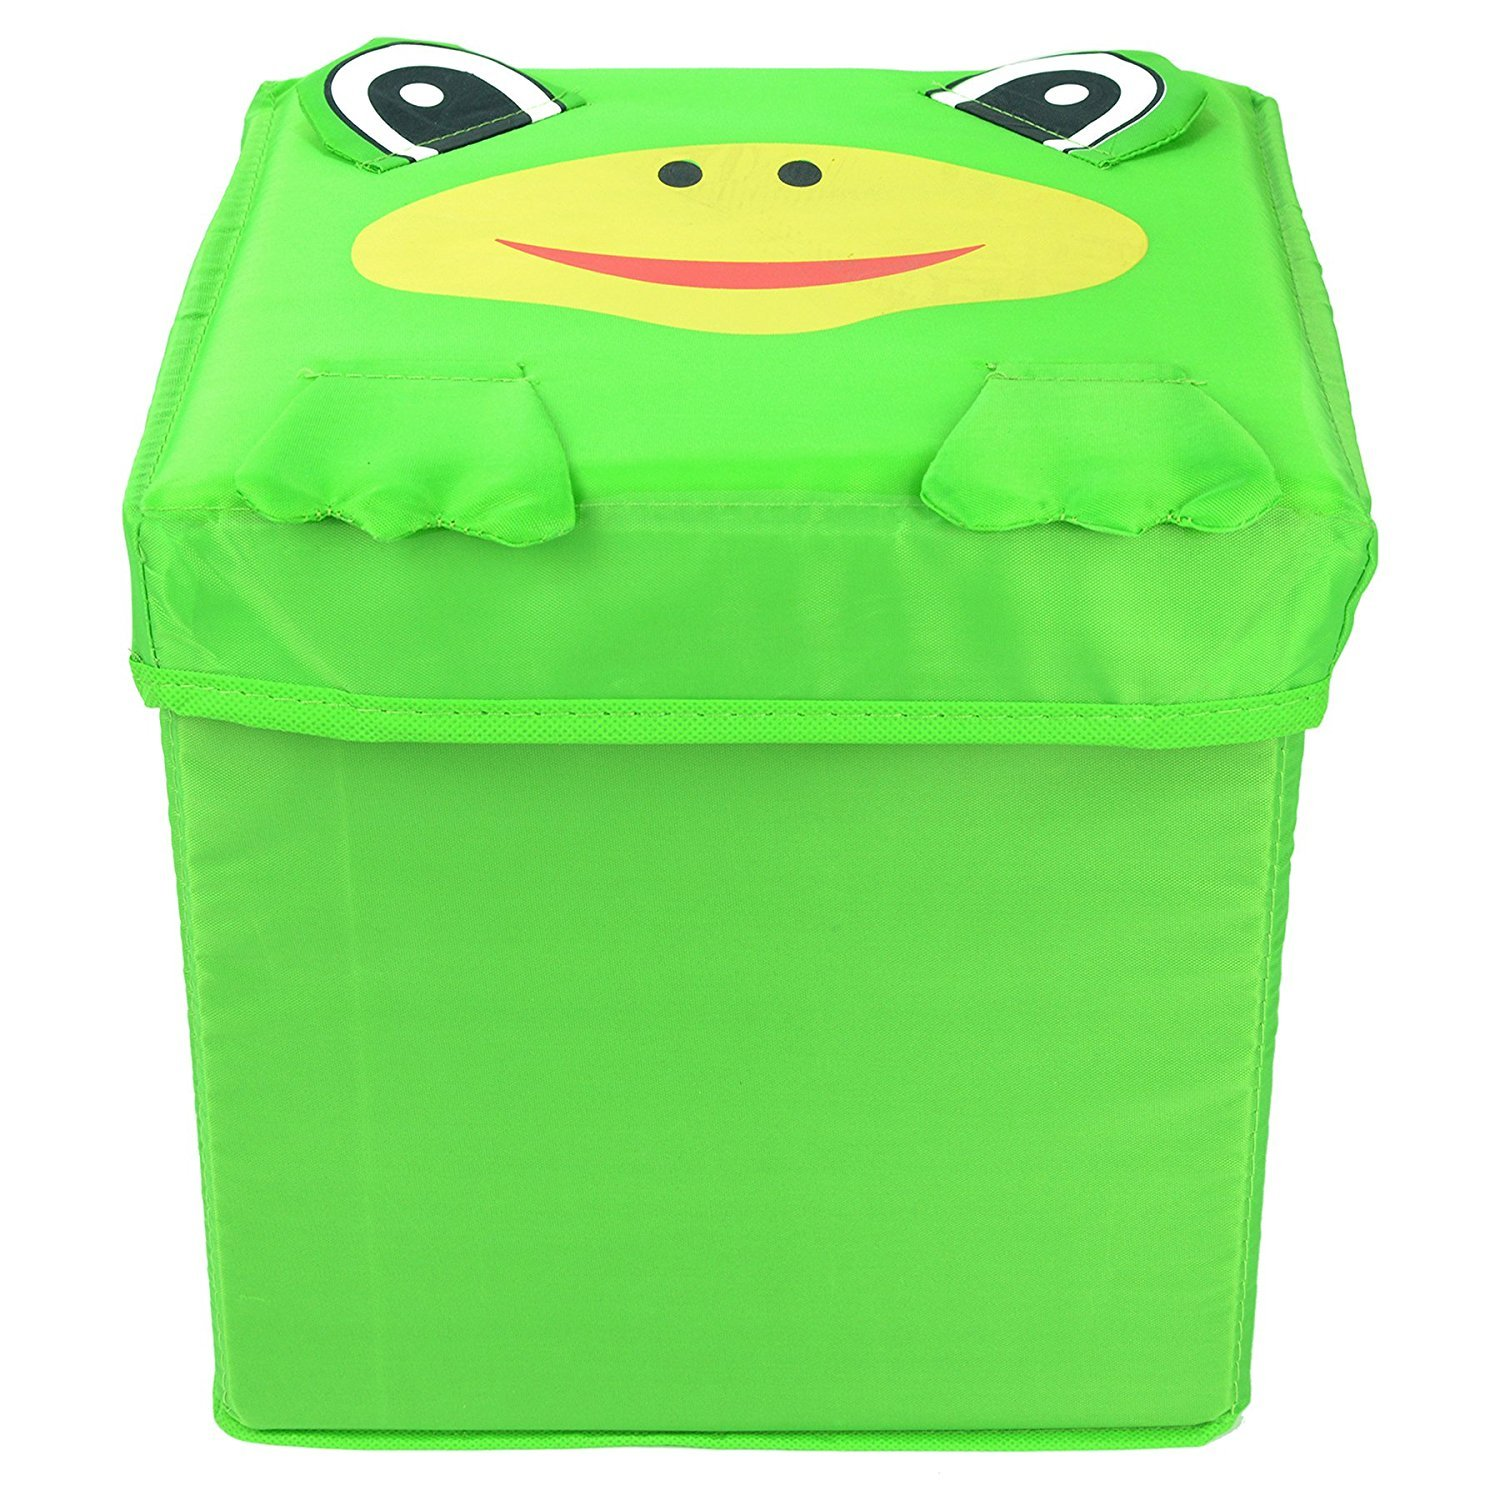 Angel's Best 2-Pack Toy Storage Cubes - Frog & Elephant Children's Closet Organizing & Storage Boxes - Great for Cube Organizers